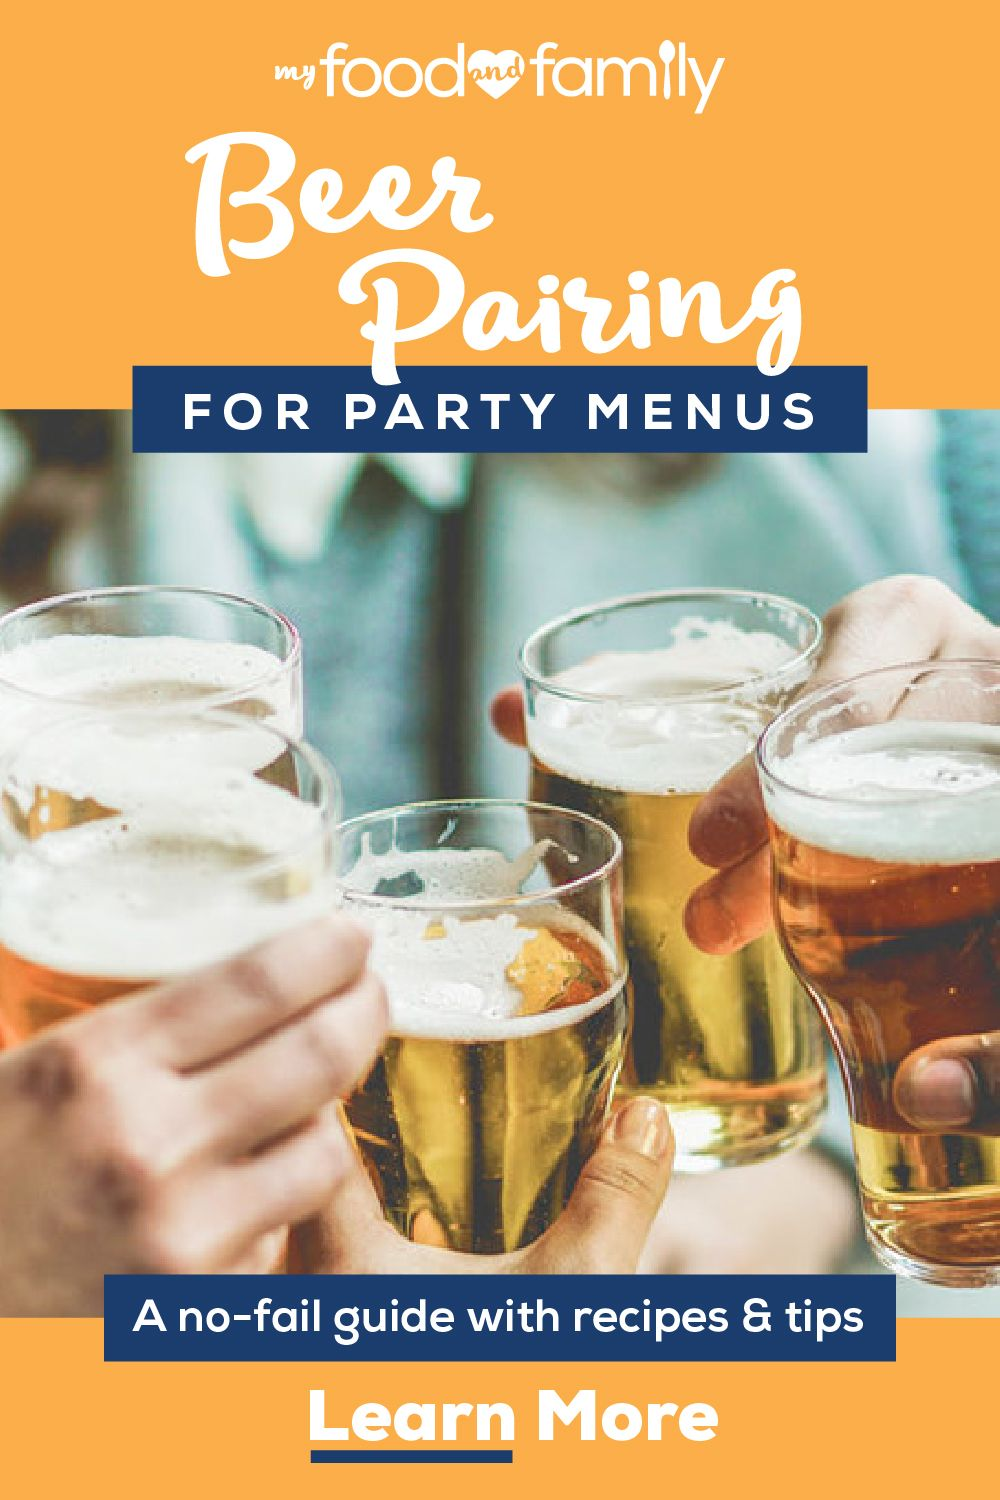 A Guide to Beer Pairing for Party Menus